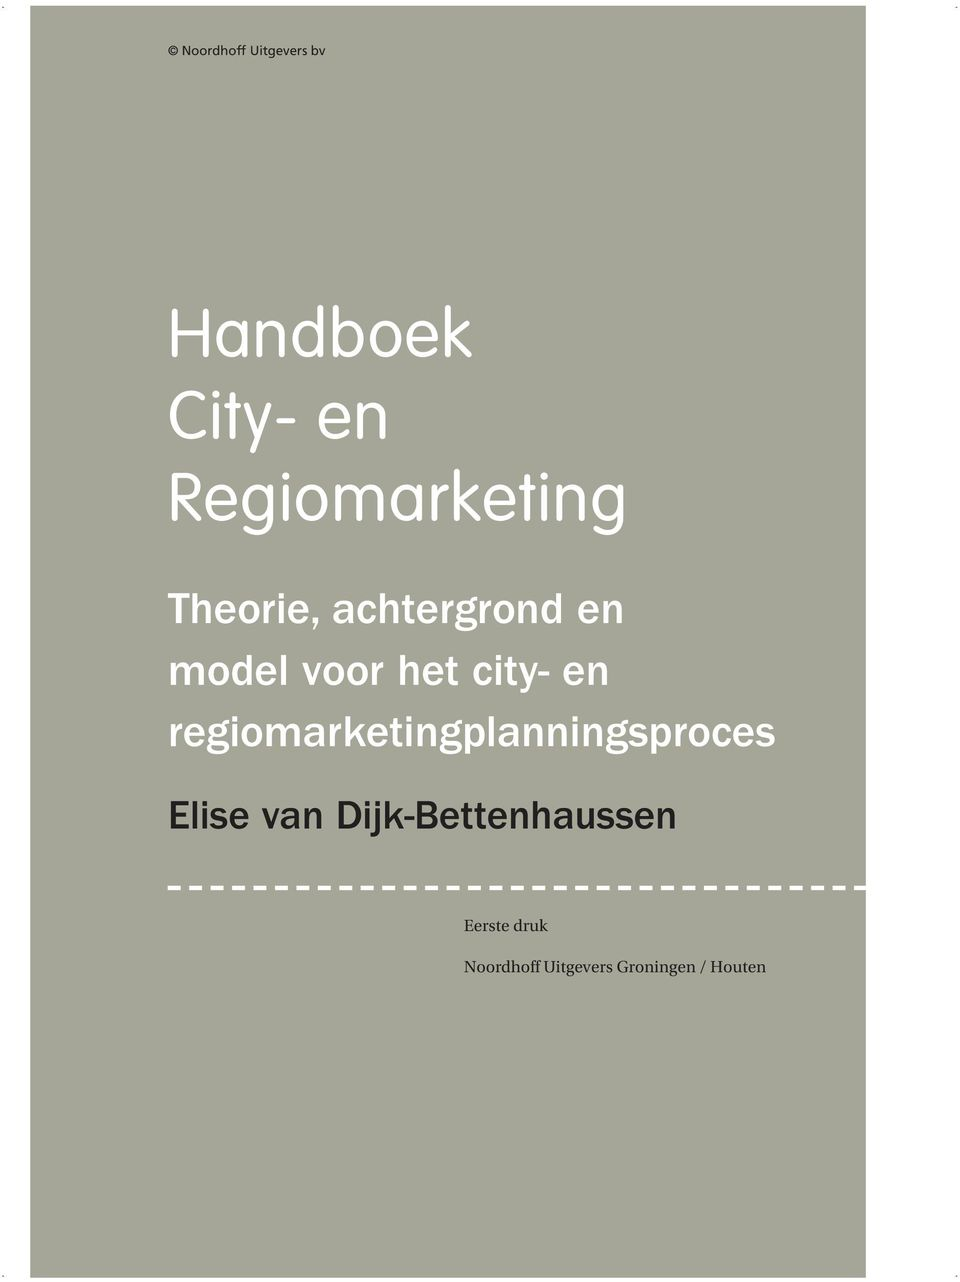 city- en regiomarketingplanningsproces Elise van